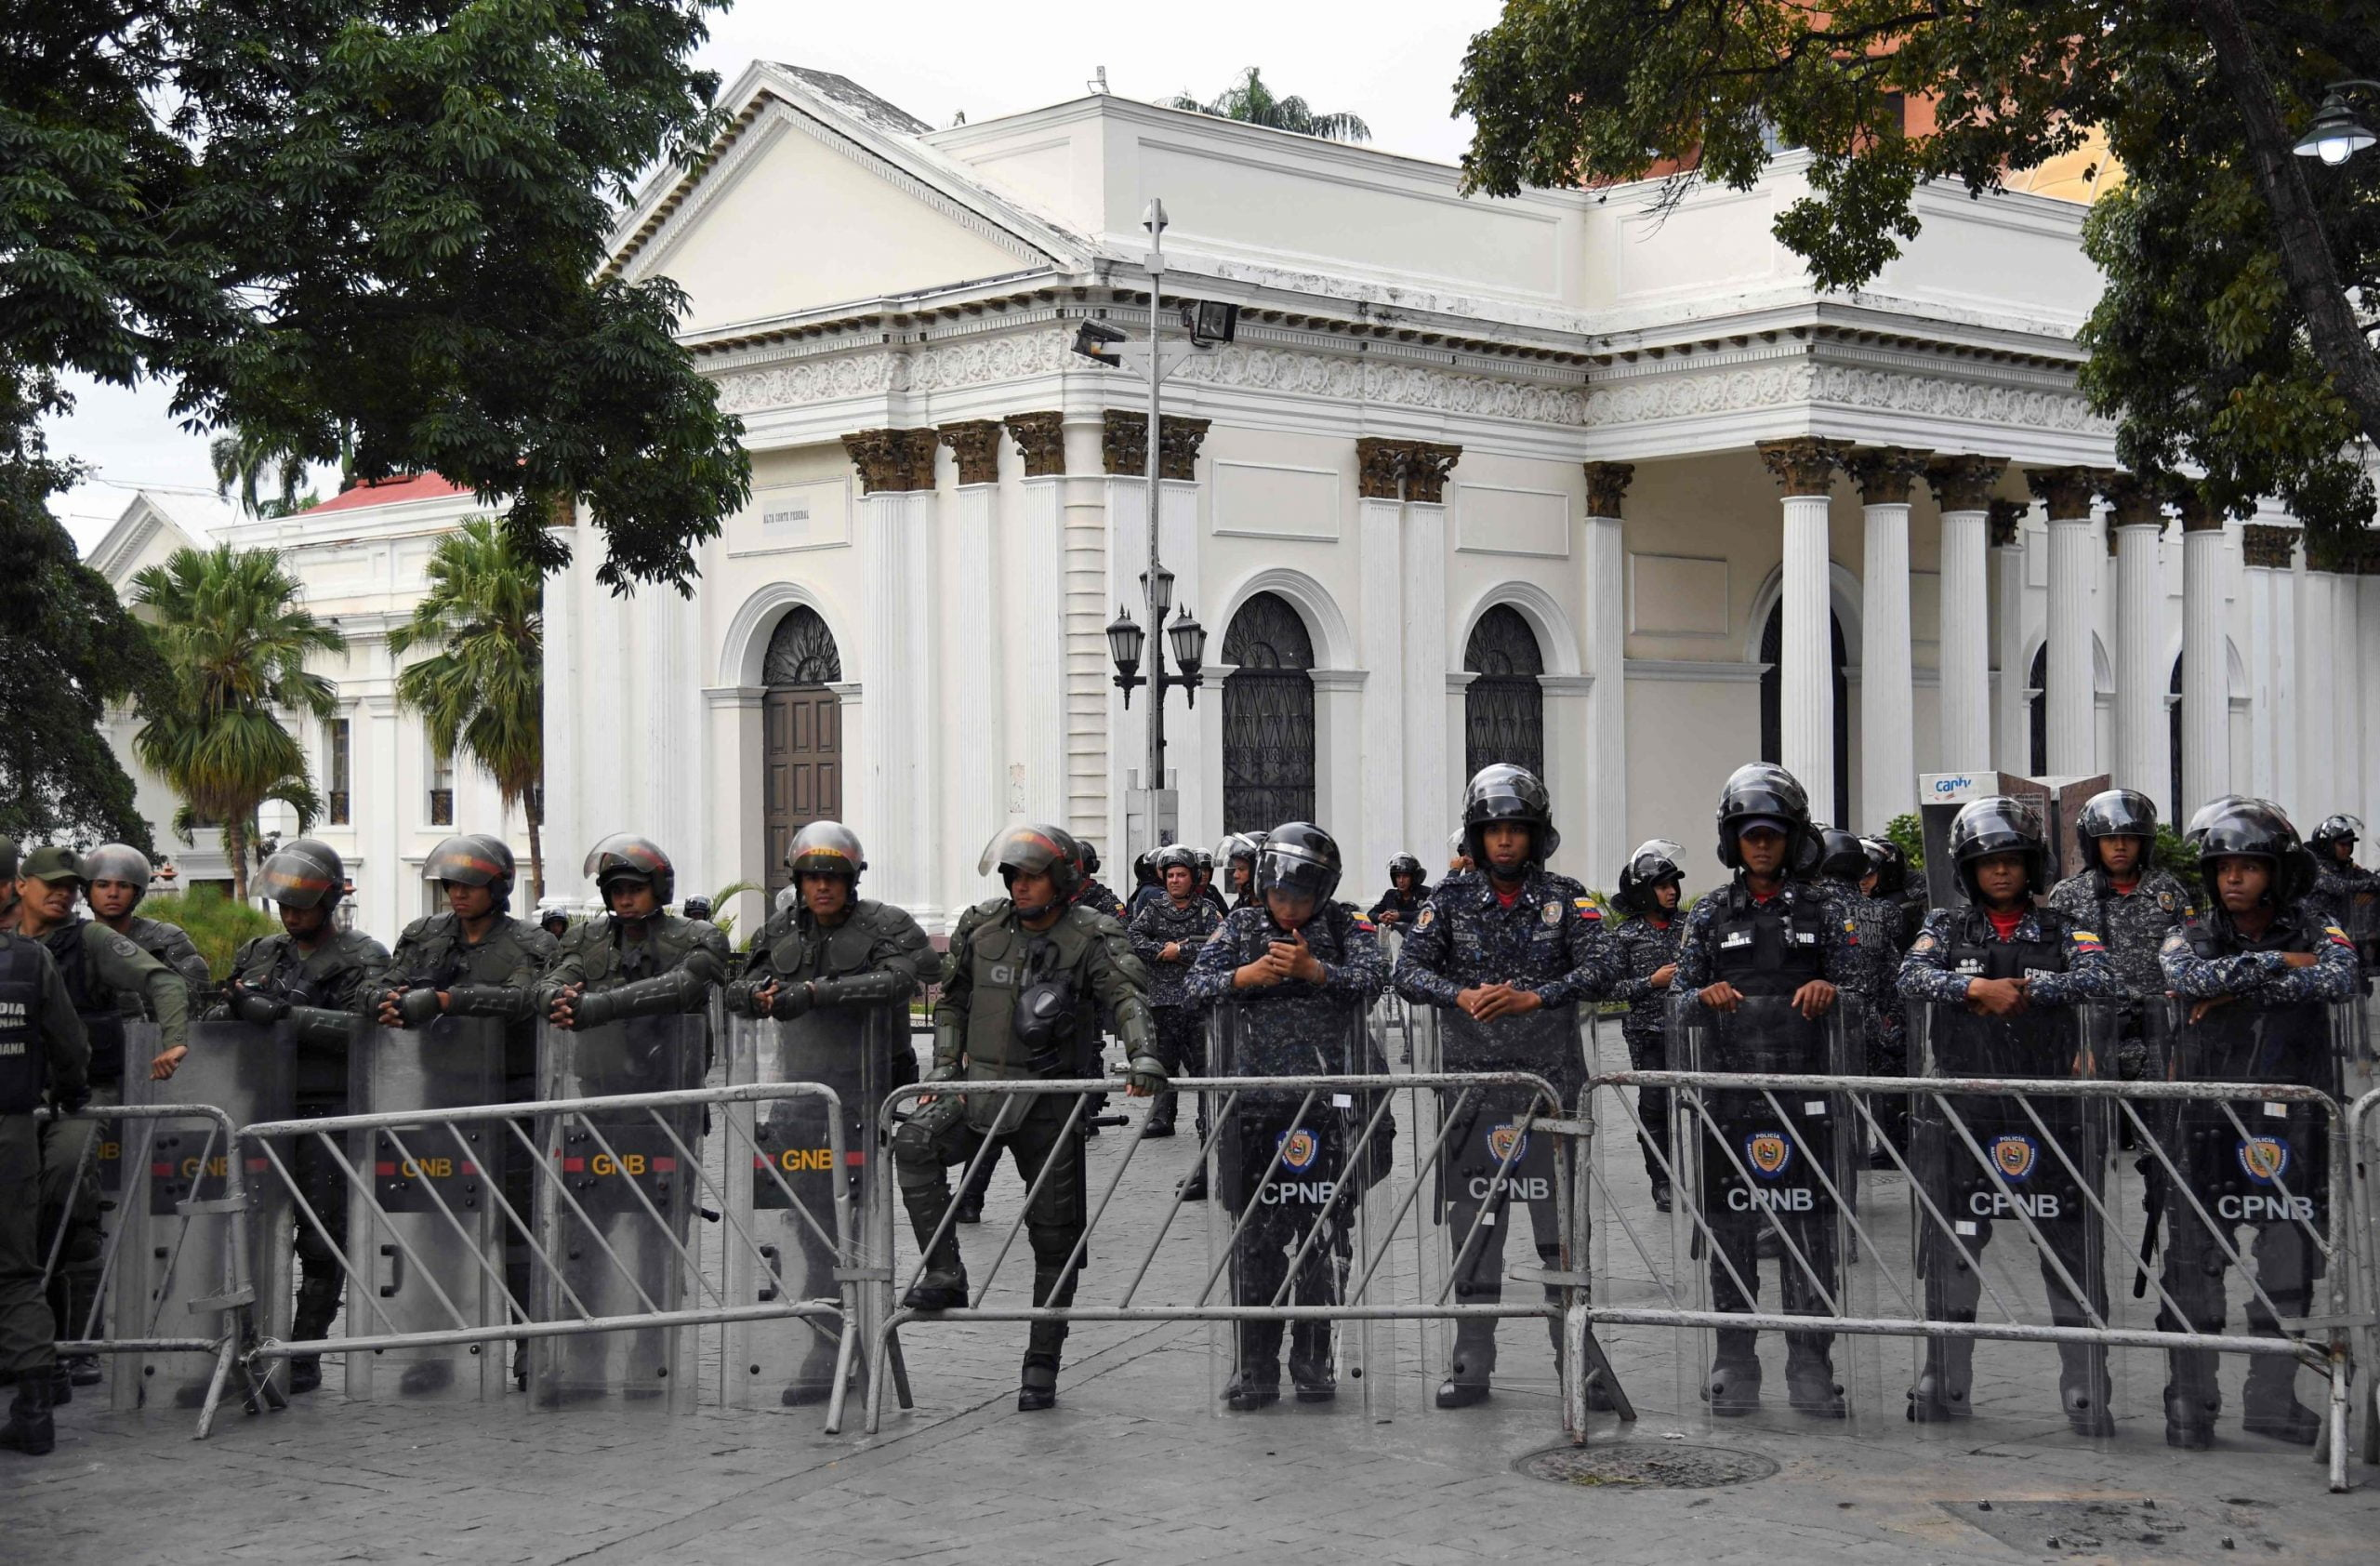 The Venezuelan opposition has announced that it will boycott the next general election